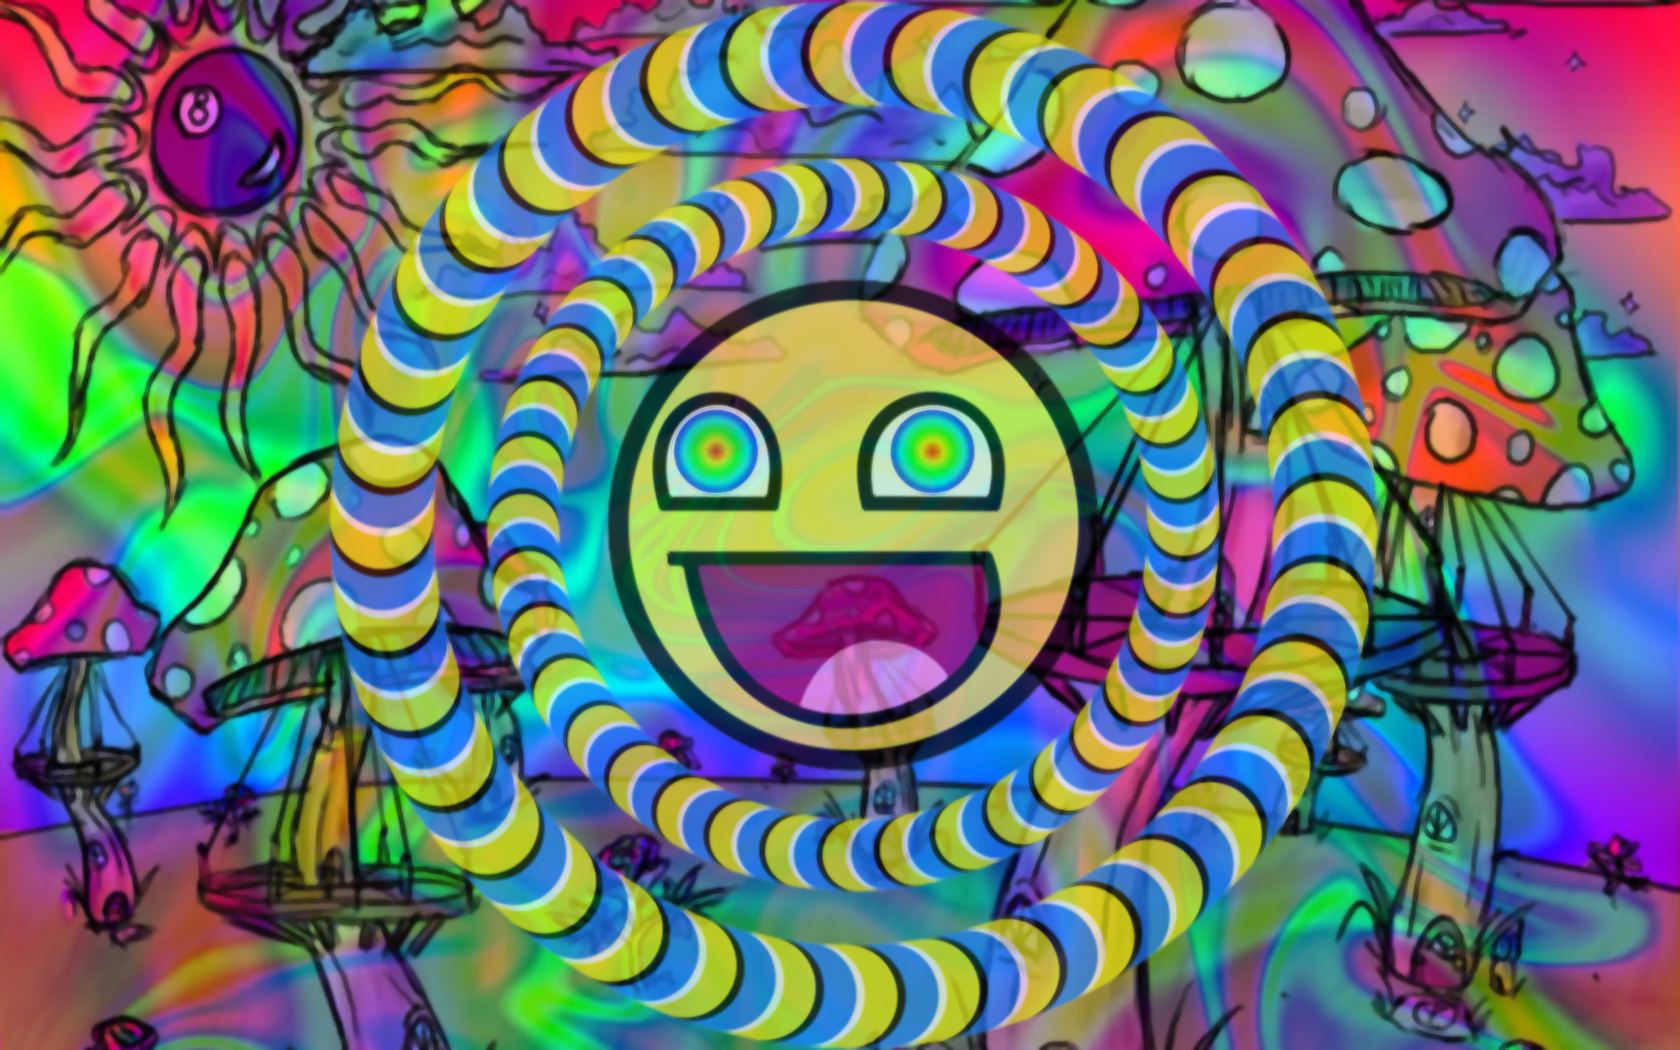 comhigh definition wallpaperpsychedelic desktop hd wallpaper 495858 1680x1050